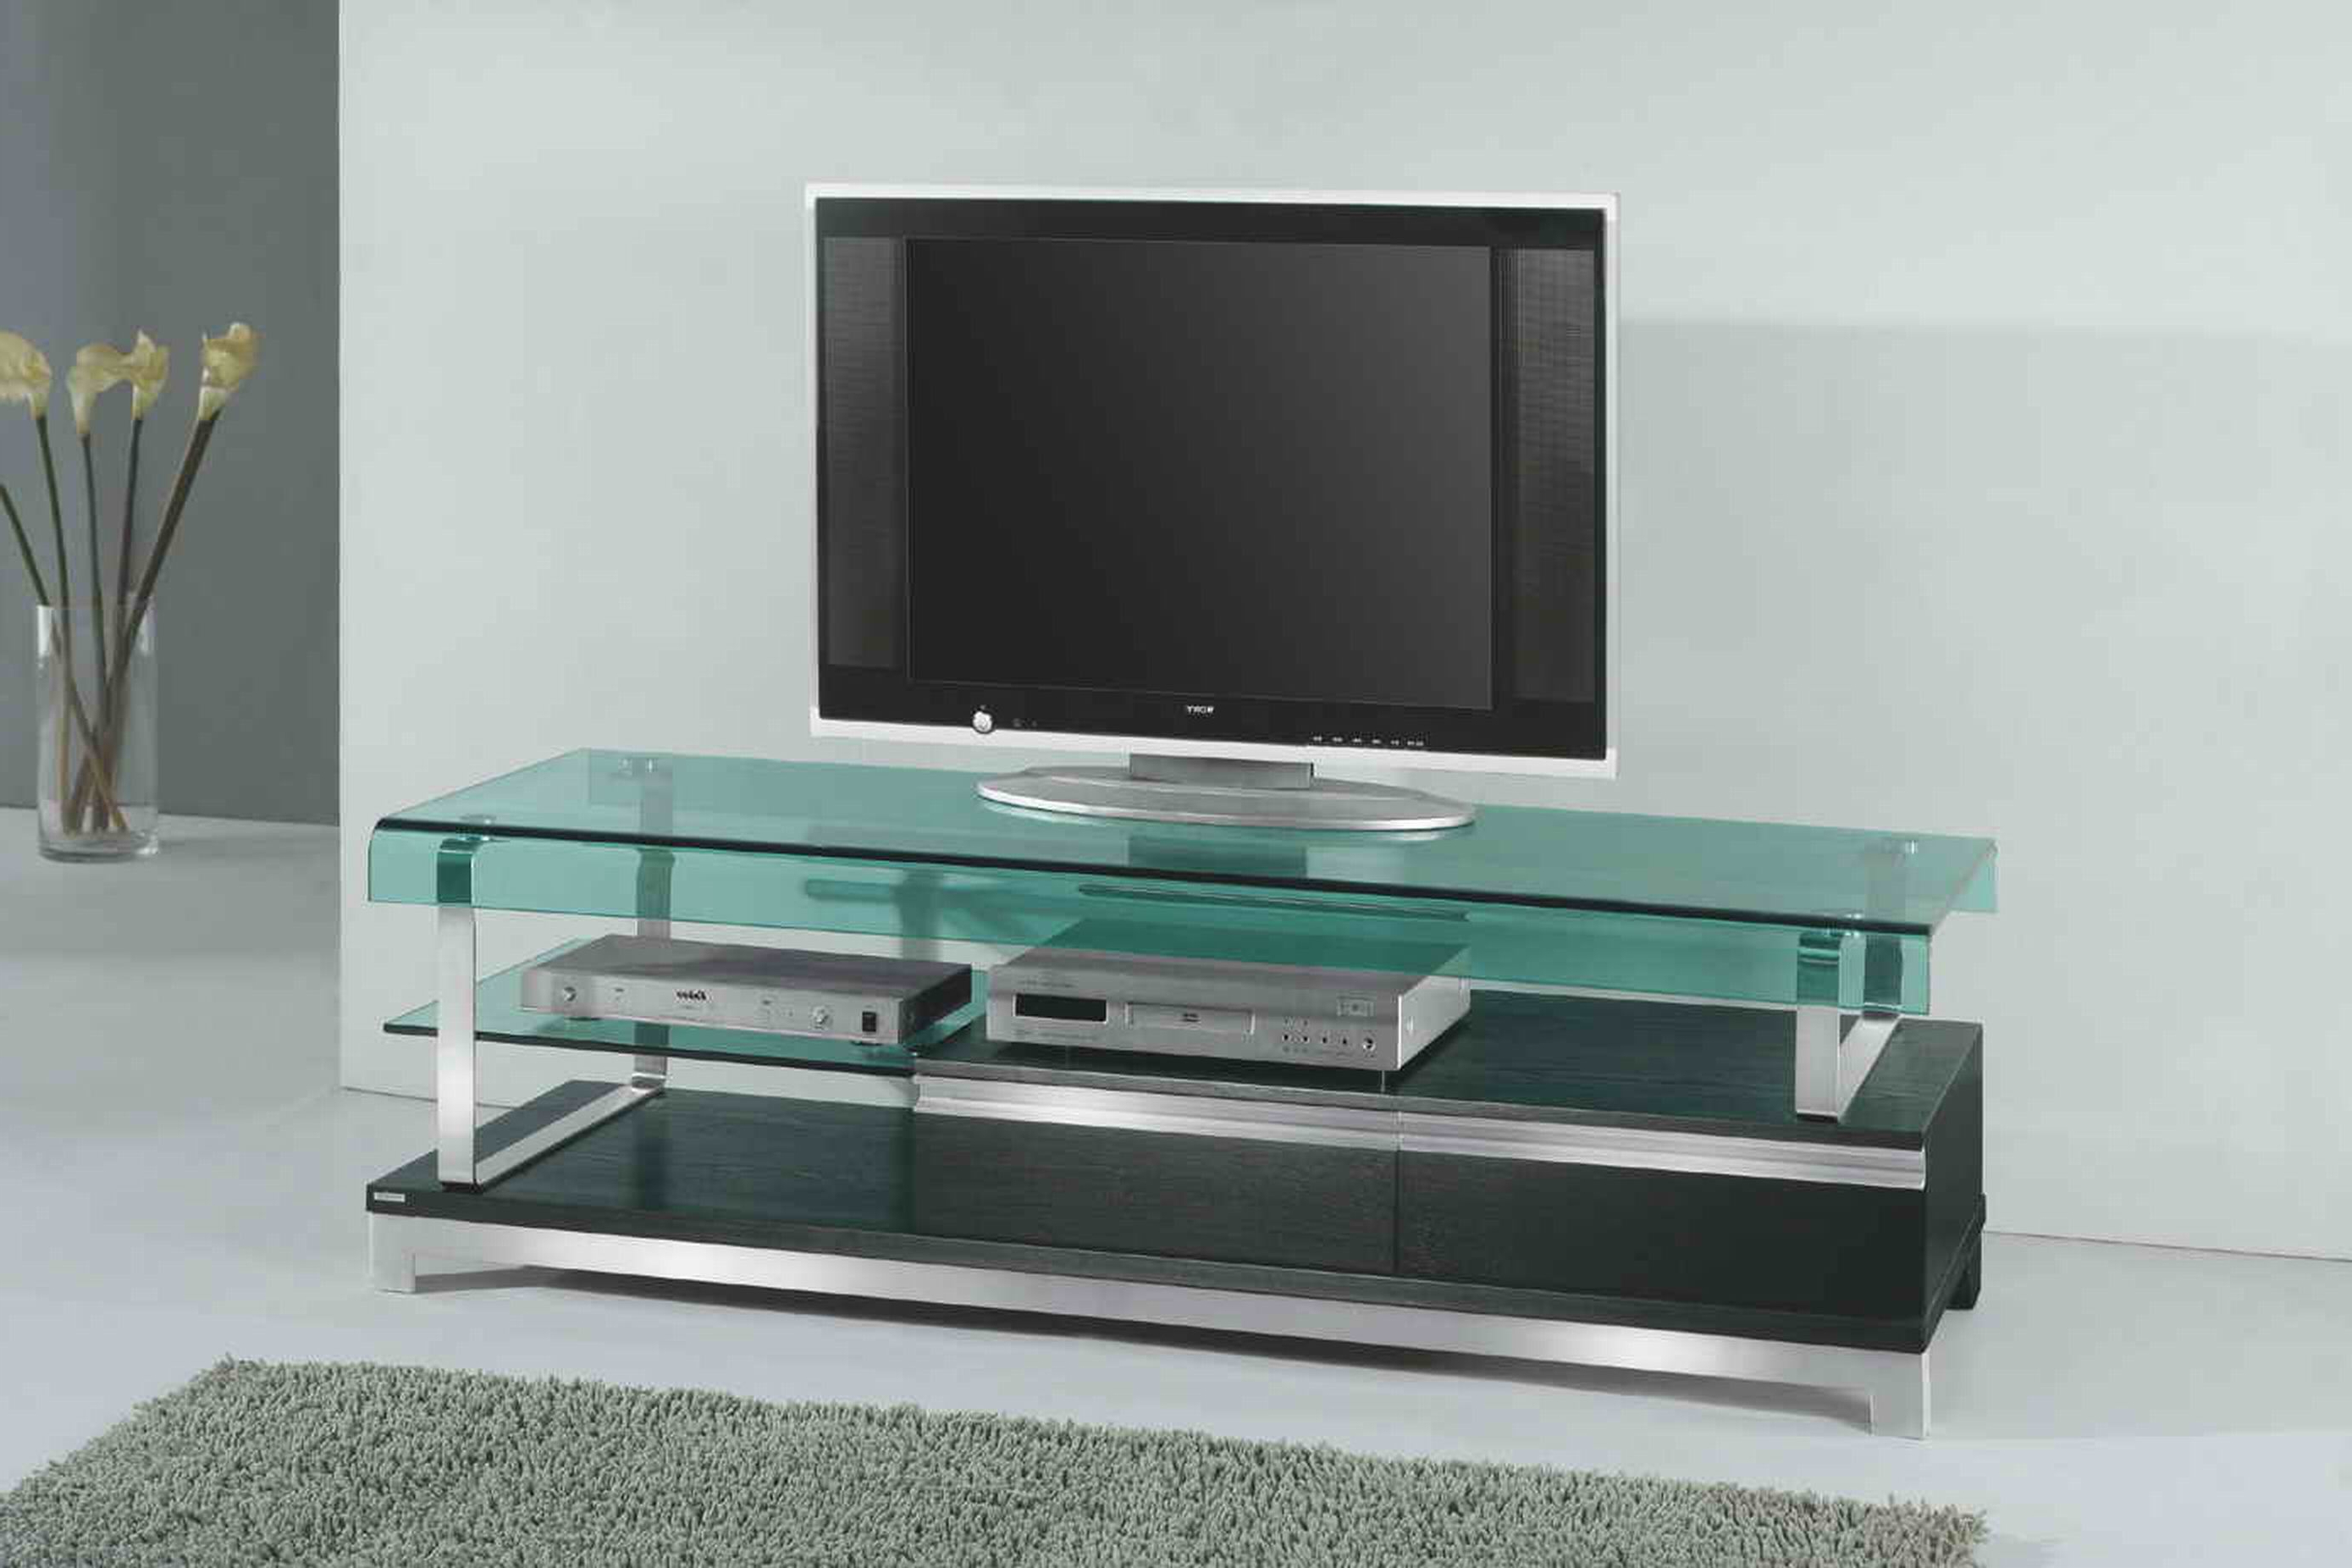 Tall Skinny Tv Stand Narrow Flat Screen Stands For Bedroom Corner Throughout Latest Slim Tv Stands (View 17 of 20)